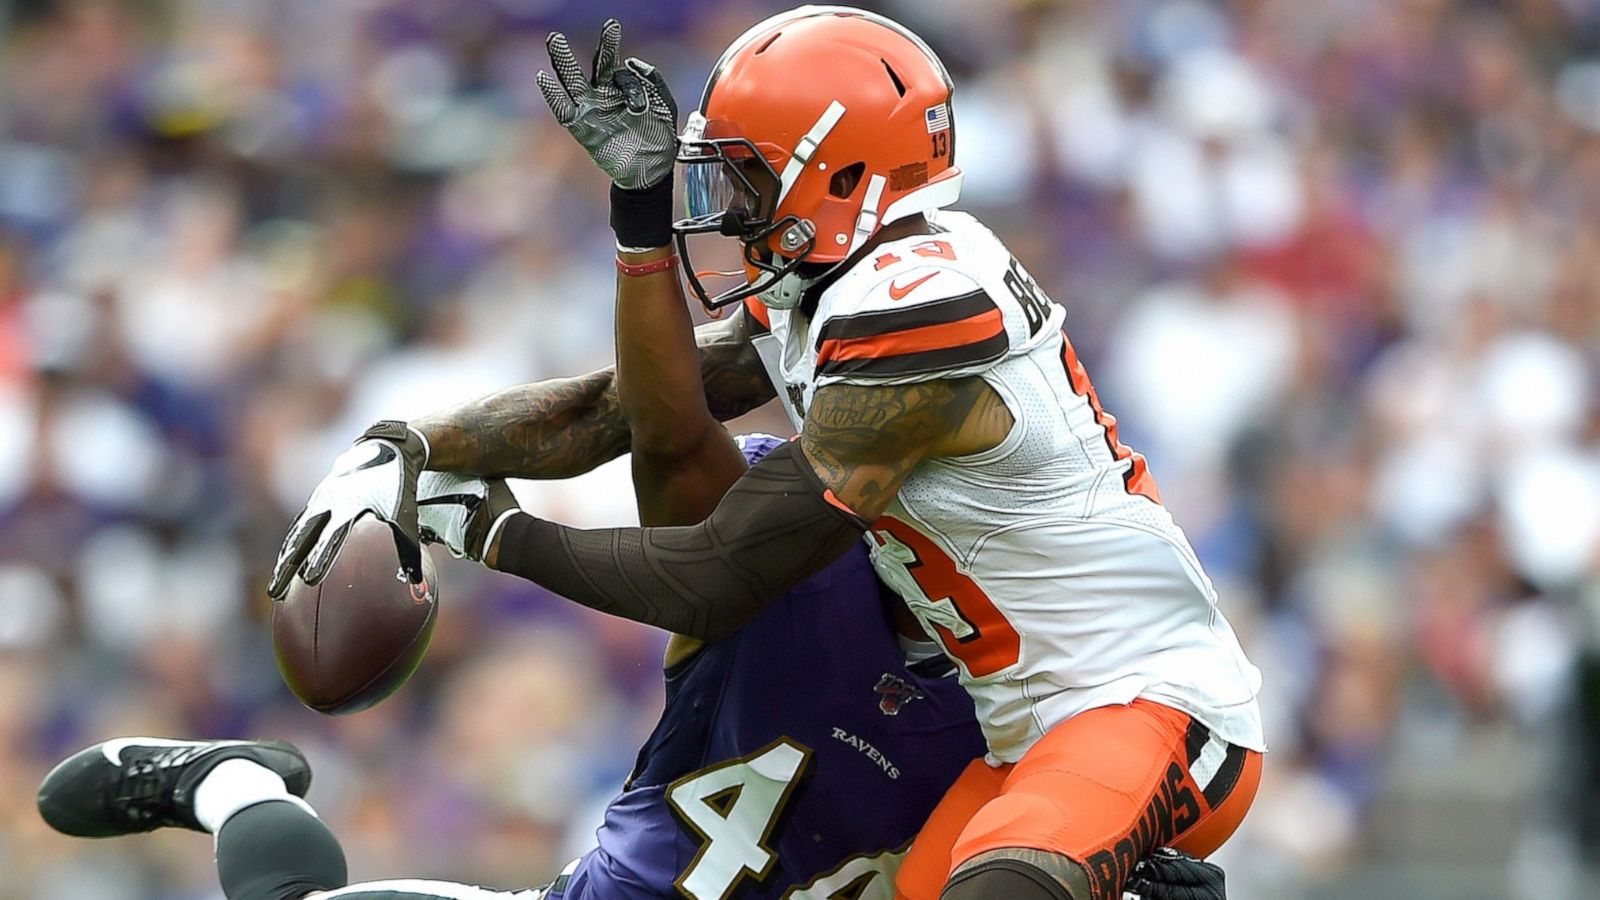 Browns Coach Choke Of Obj Doesn T Belong In Nfl Game Abc News